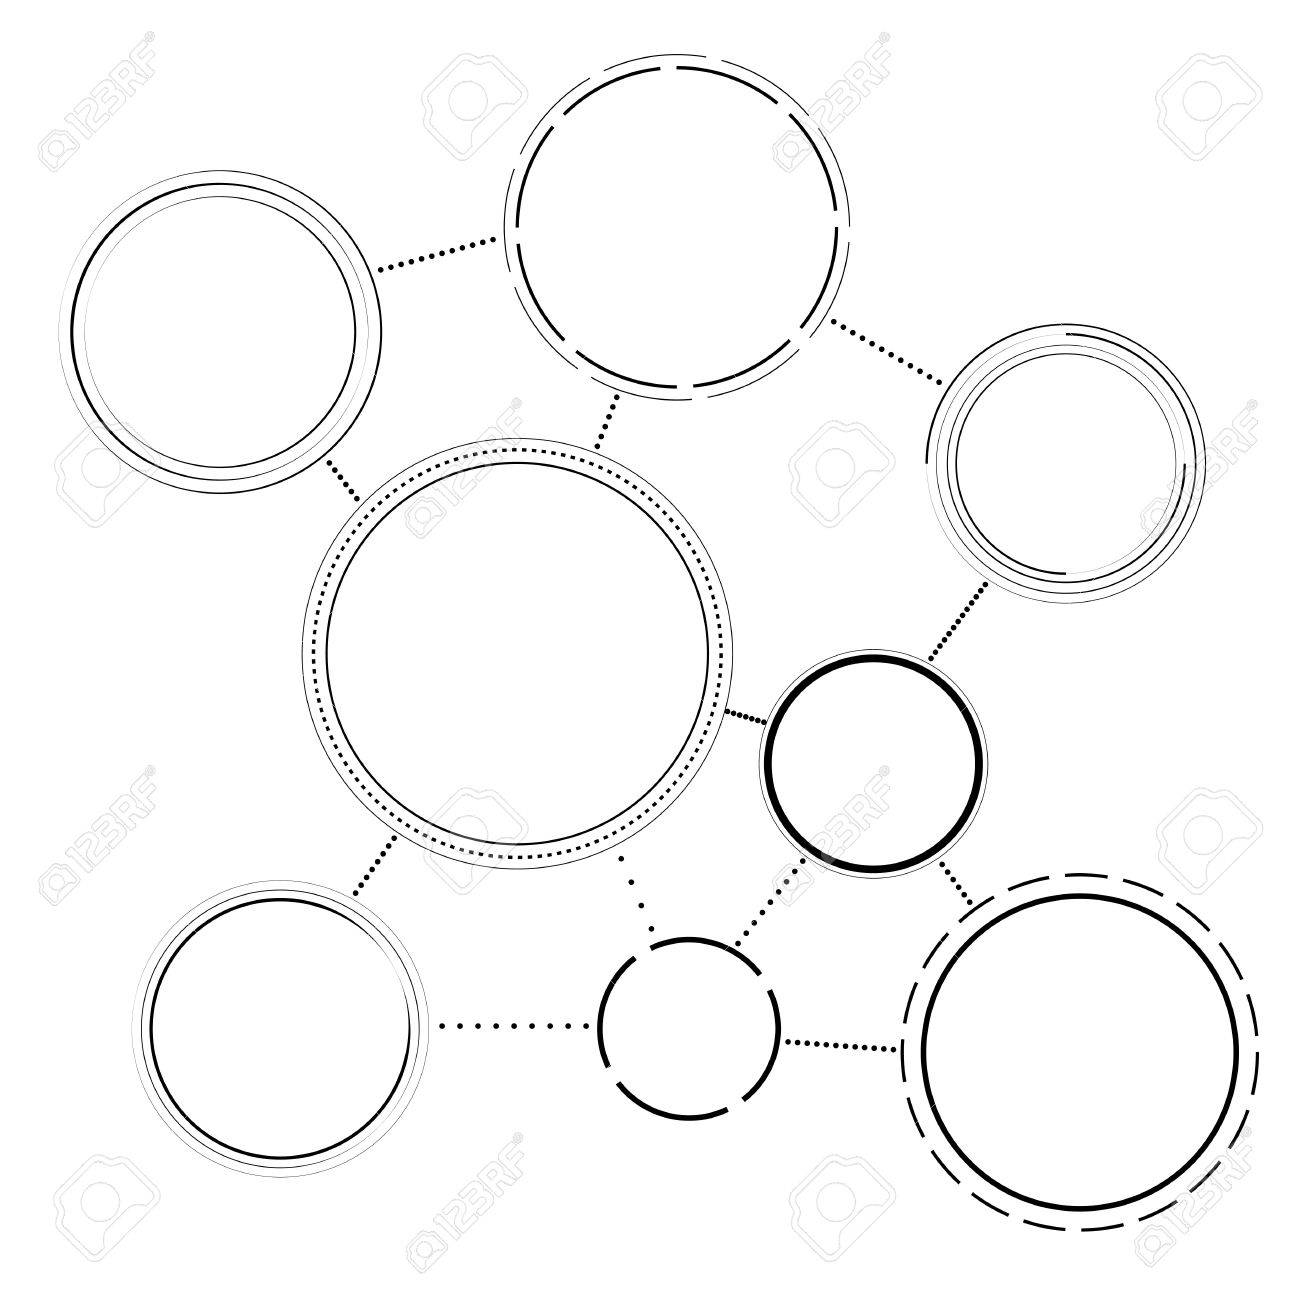 black and white simple networking scheme template for infographics